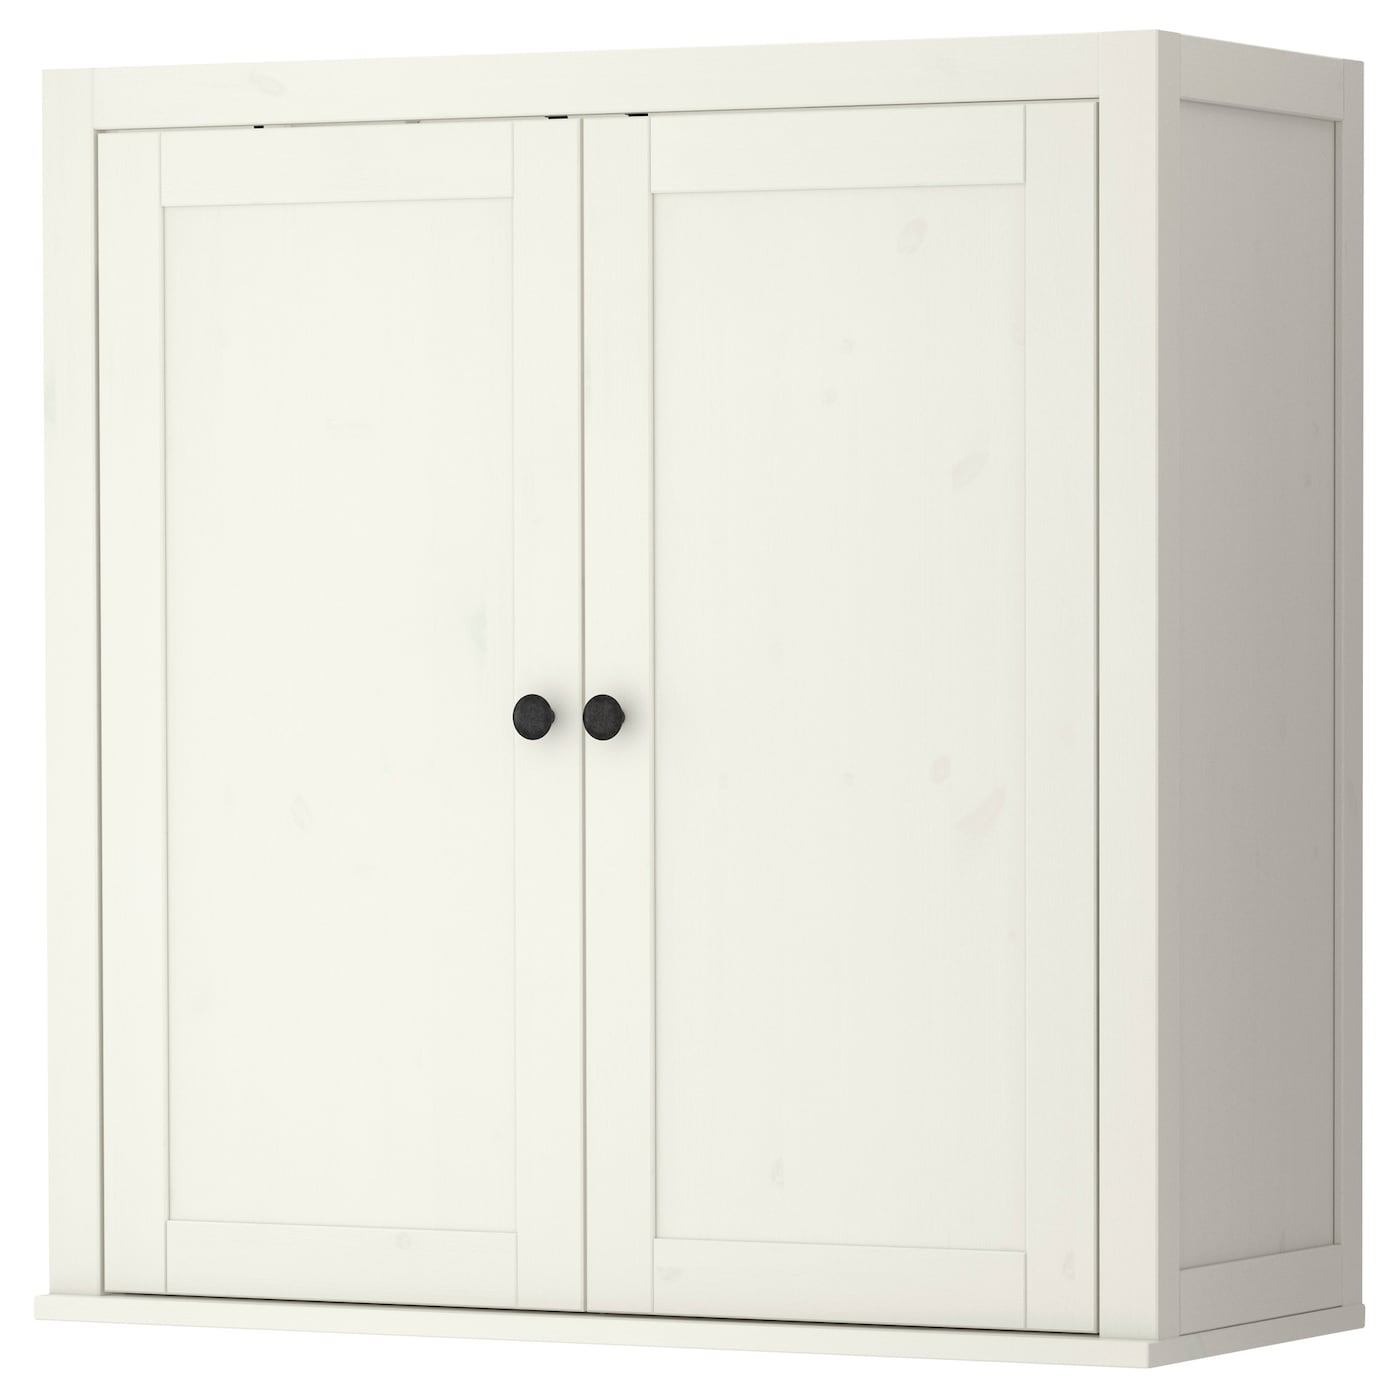 IKEA HEMNES add-on unit for bureau Solid wood is a durable natural material.